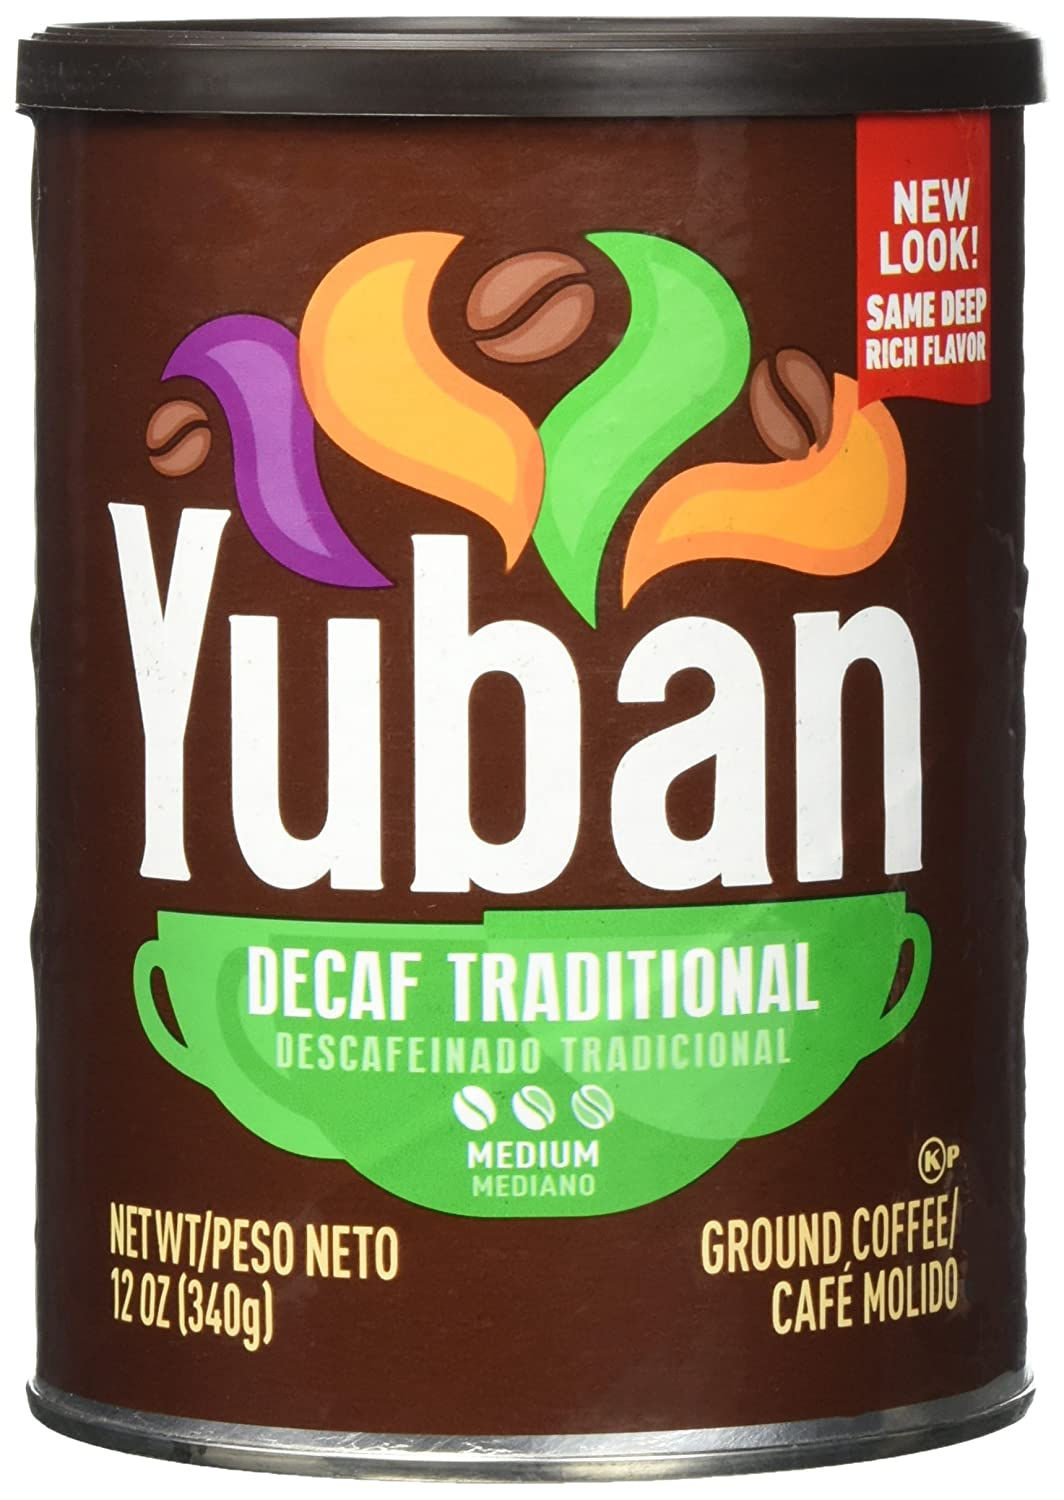 Yuban Traditional Decaf Ground Coffee, Medium Roast